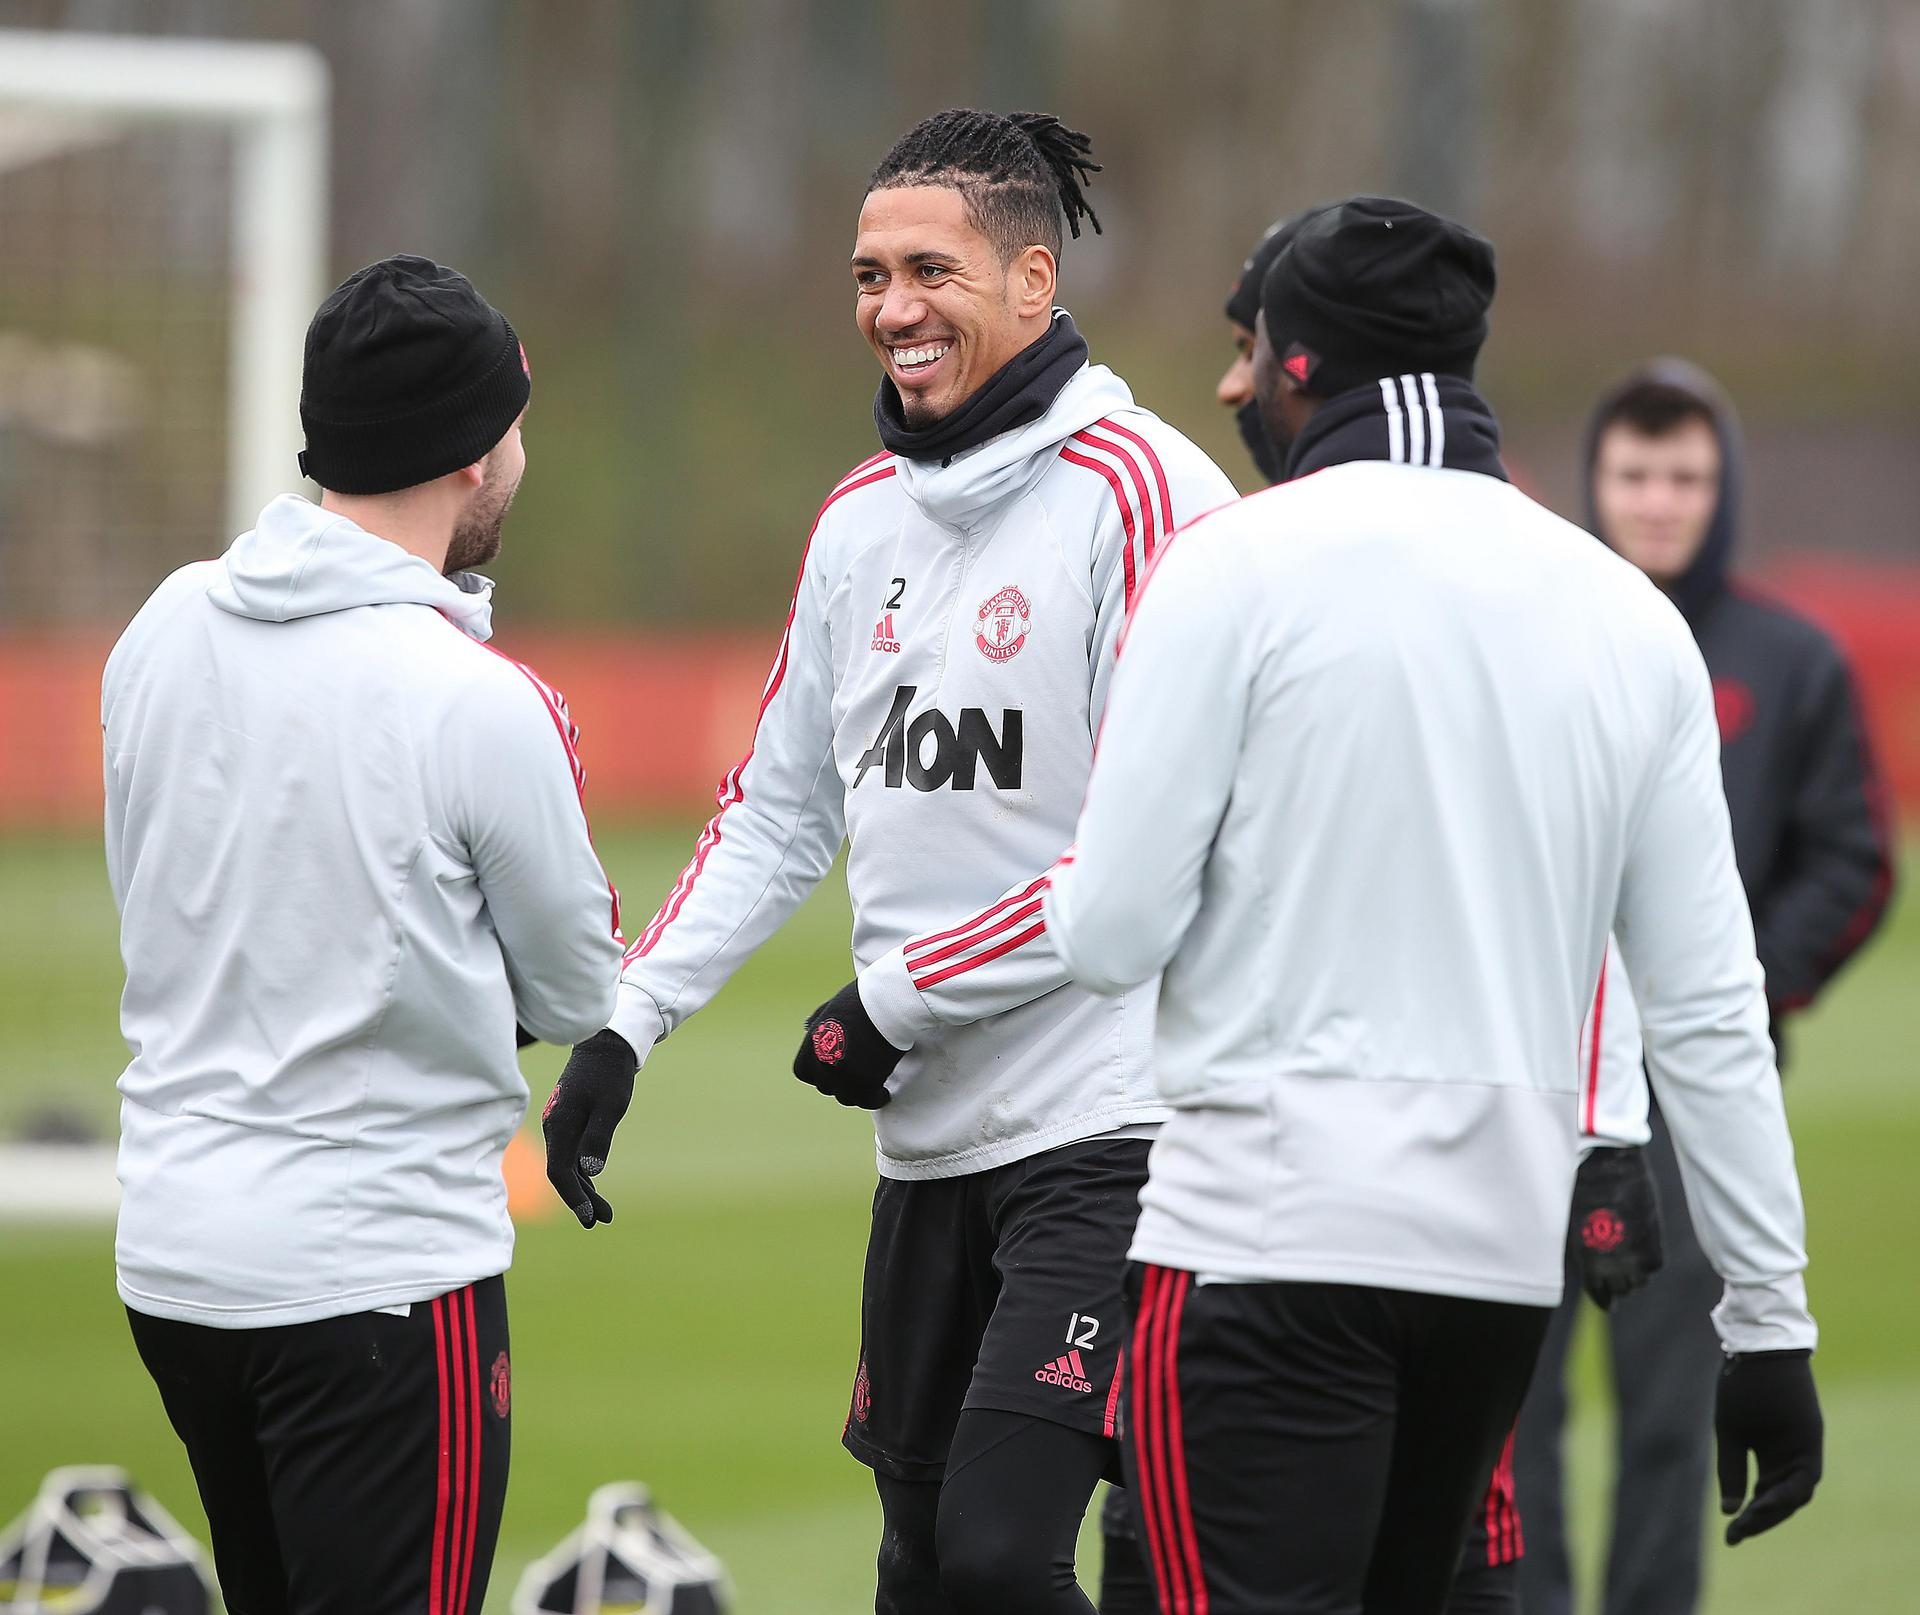 Chris Smalling in training.